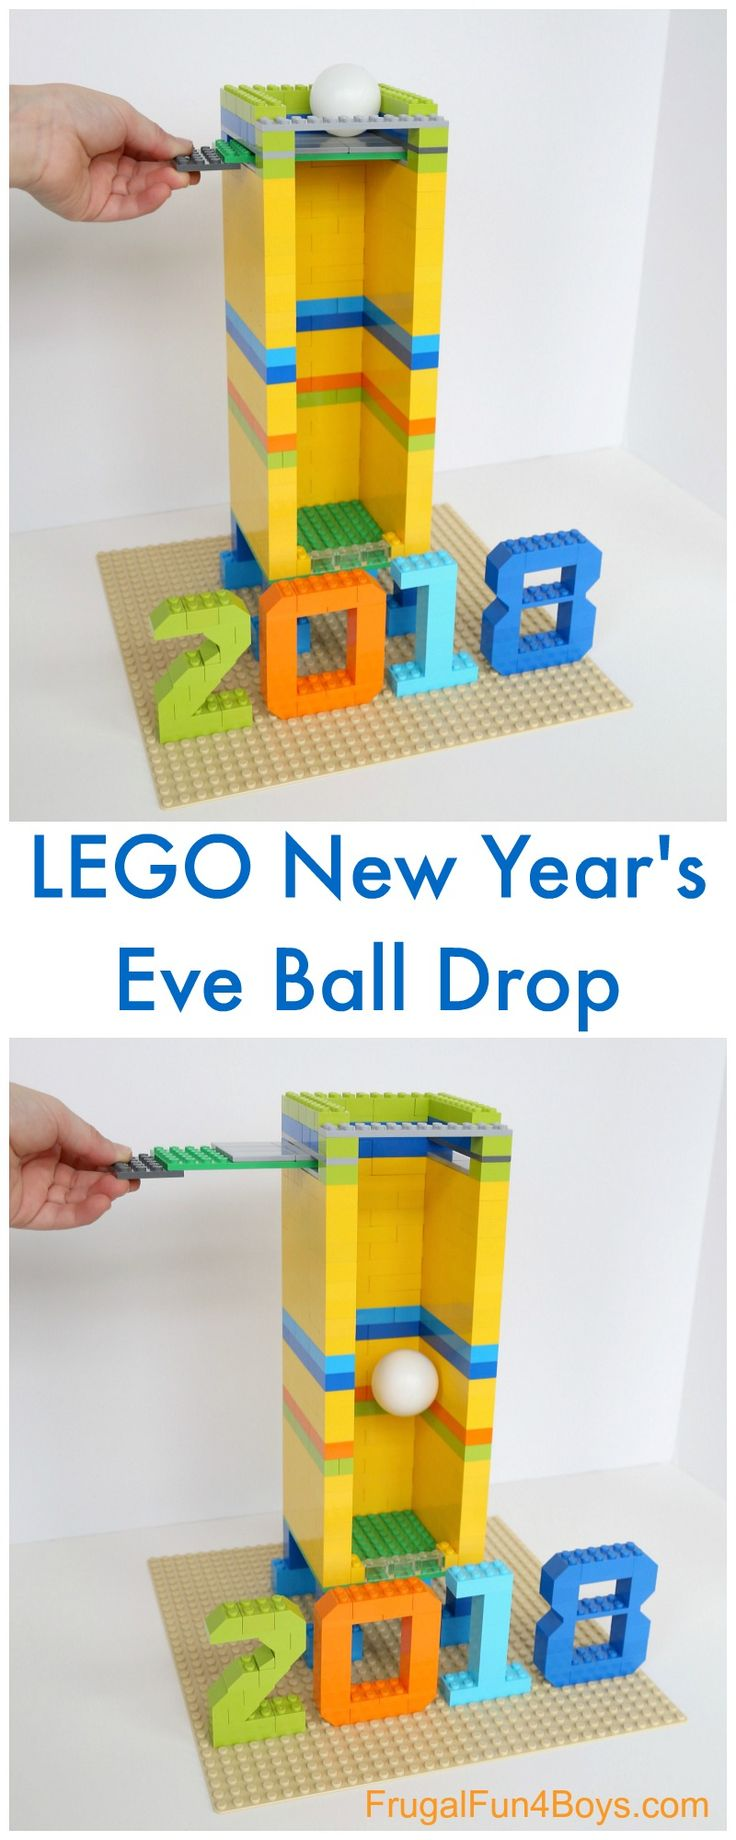 New Year's Eve for Kids - Build a LEGO Ball Drop!